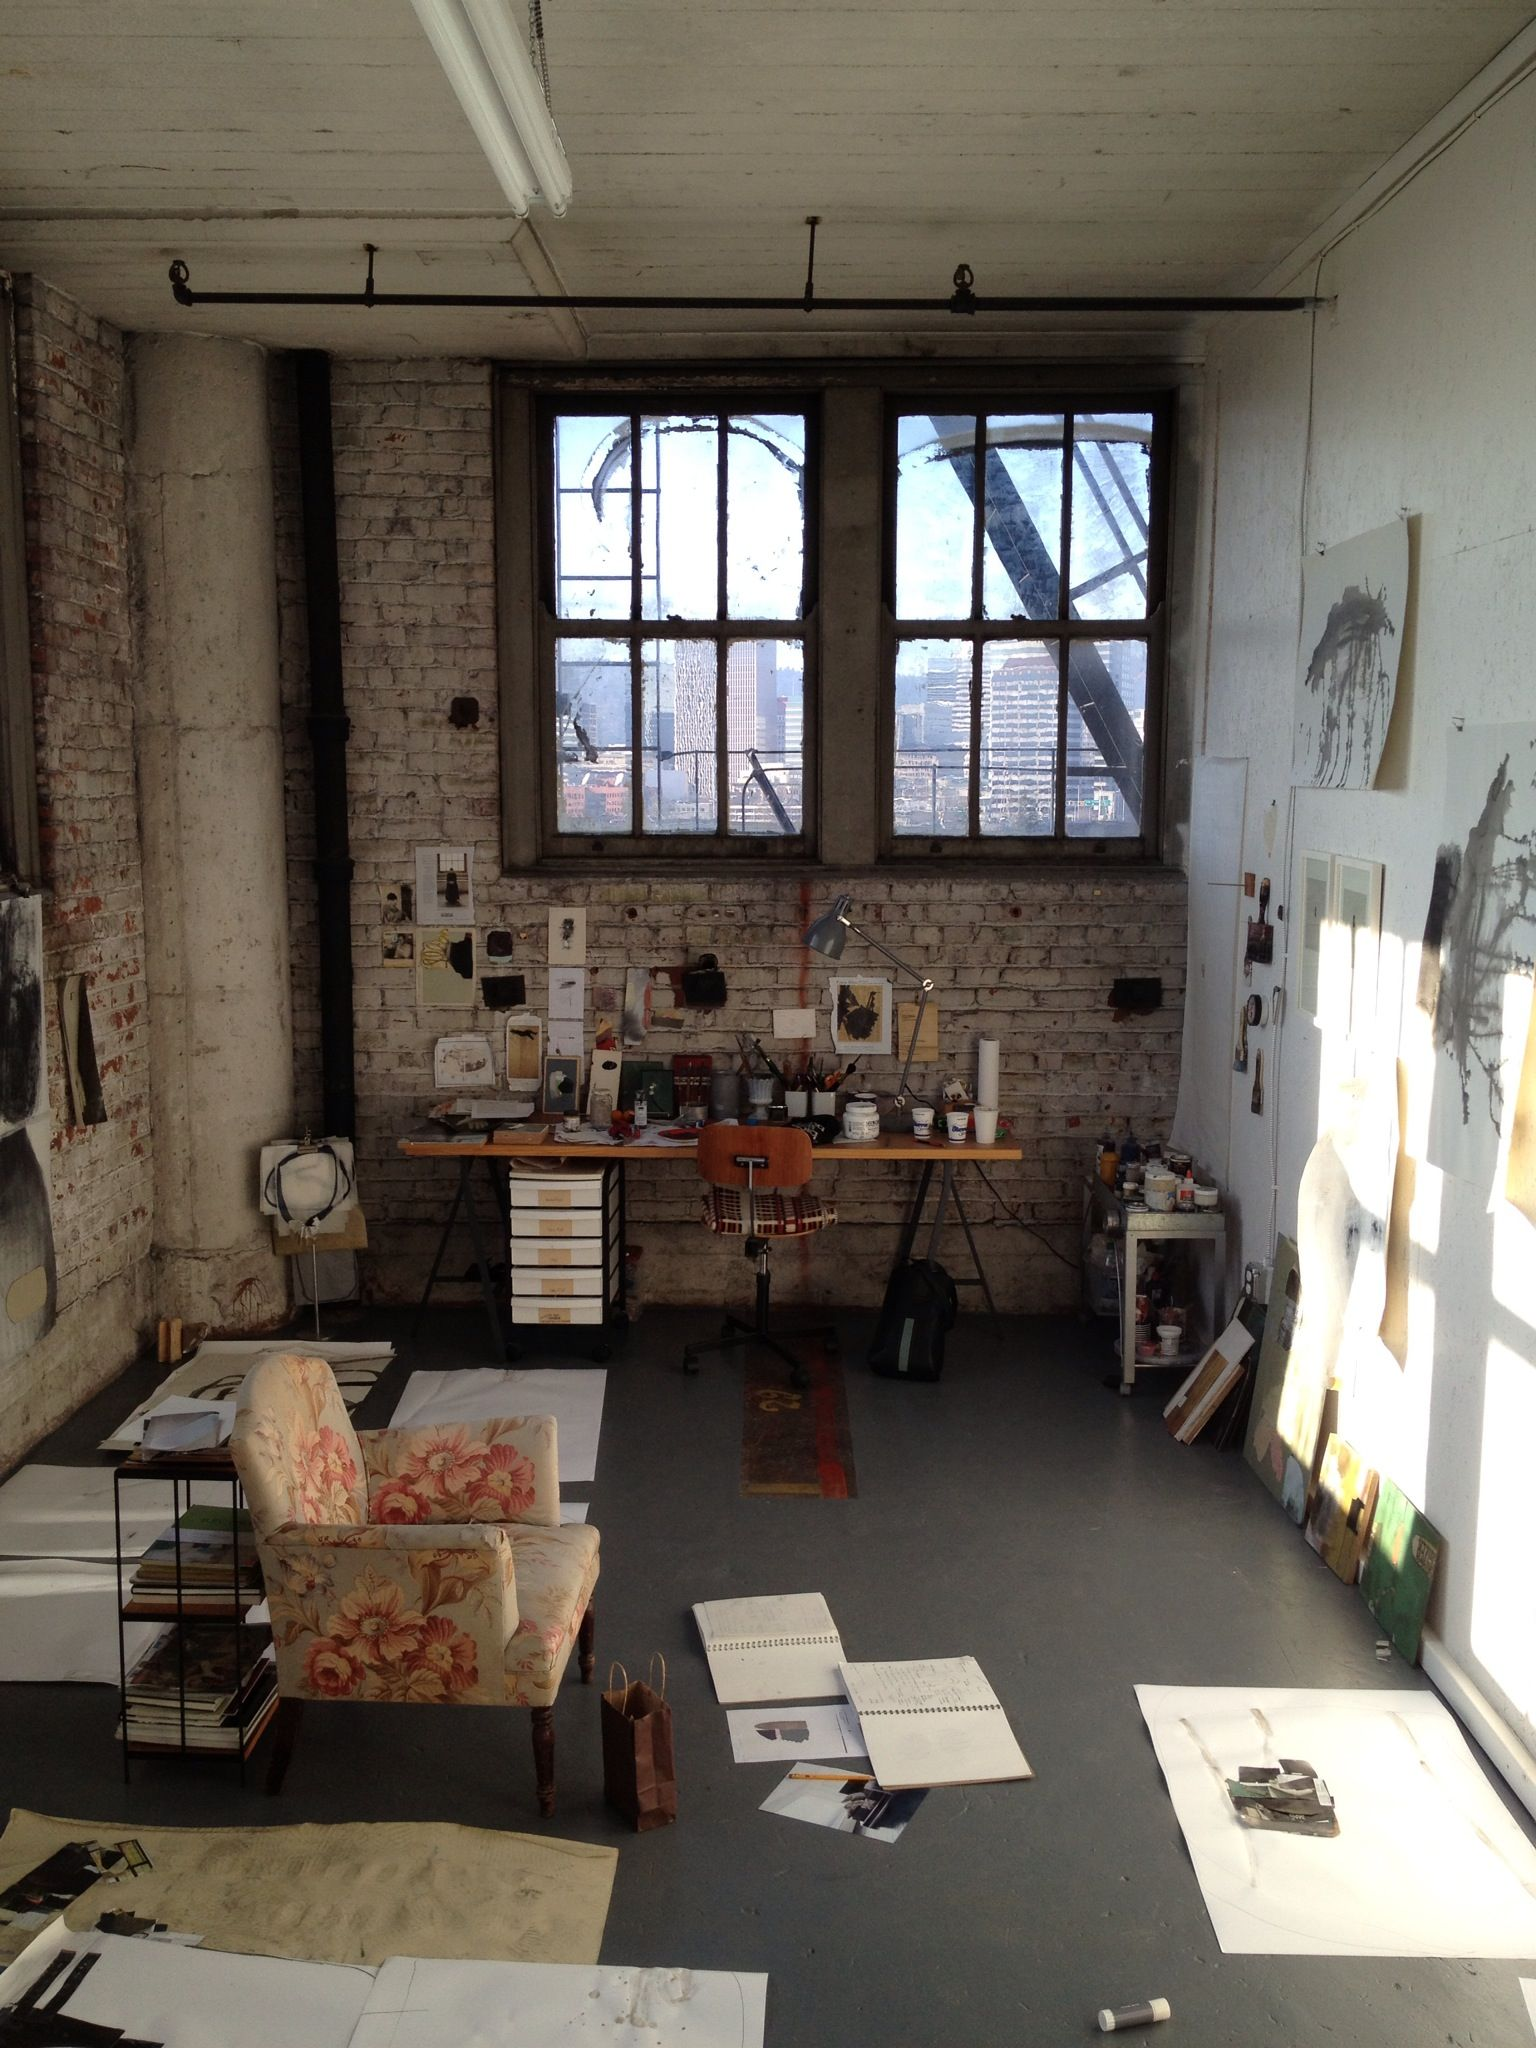 MaryAnn Puls\' studio space | inhabit | Pinterest | Studio, Spaces ...